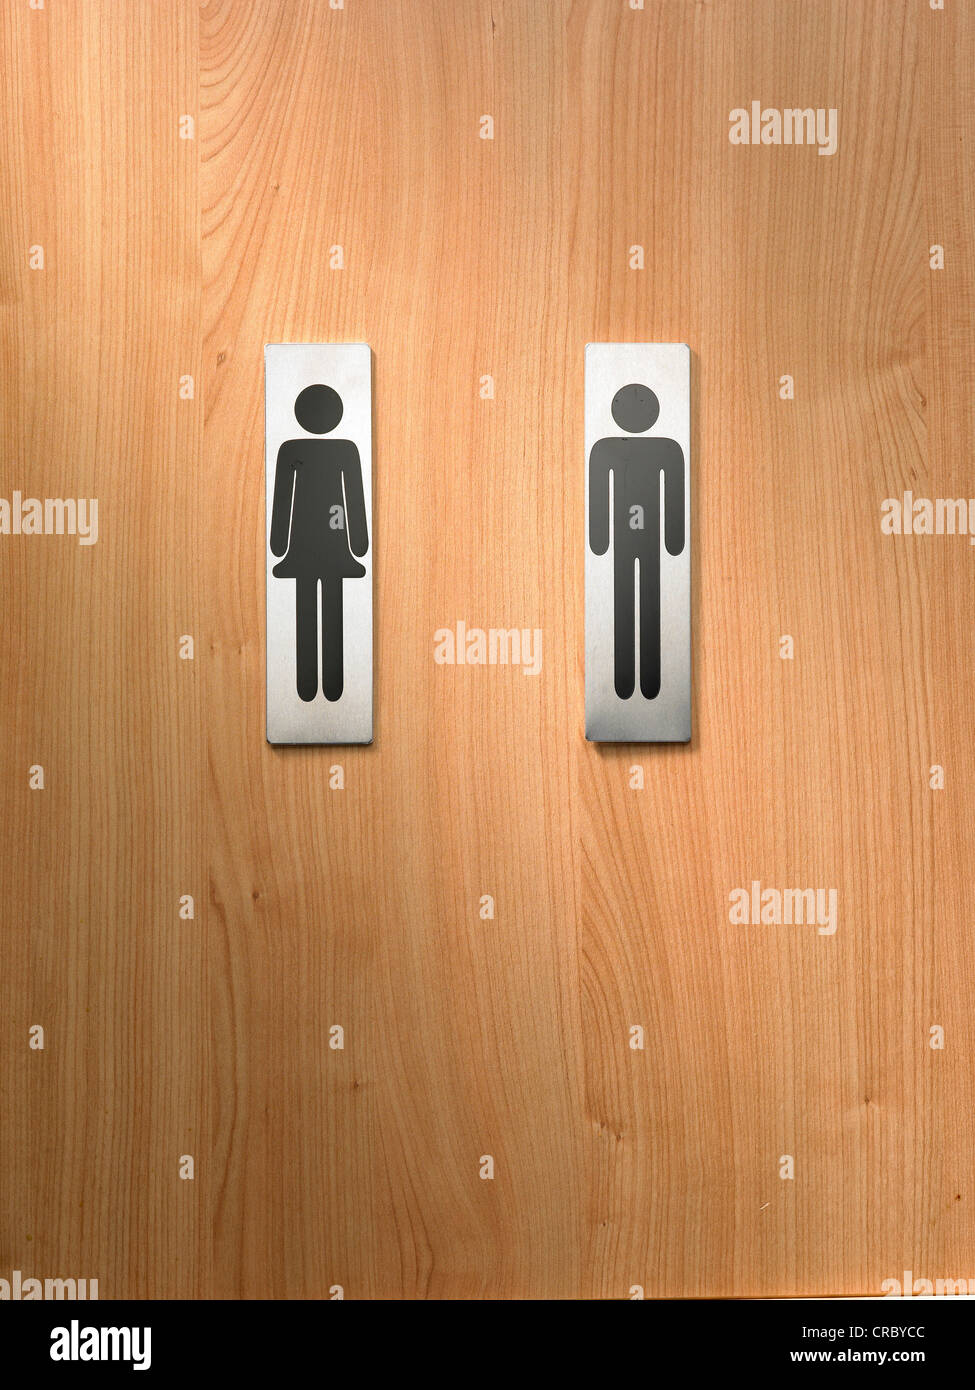 Male and female toilet signs on wooden background - Stock Image